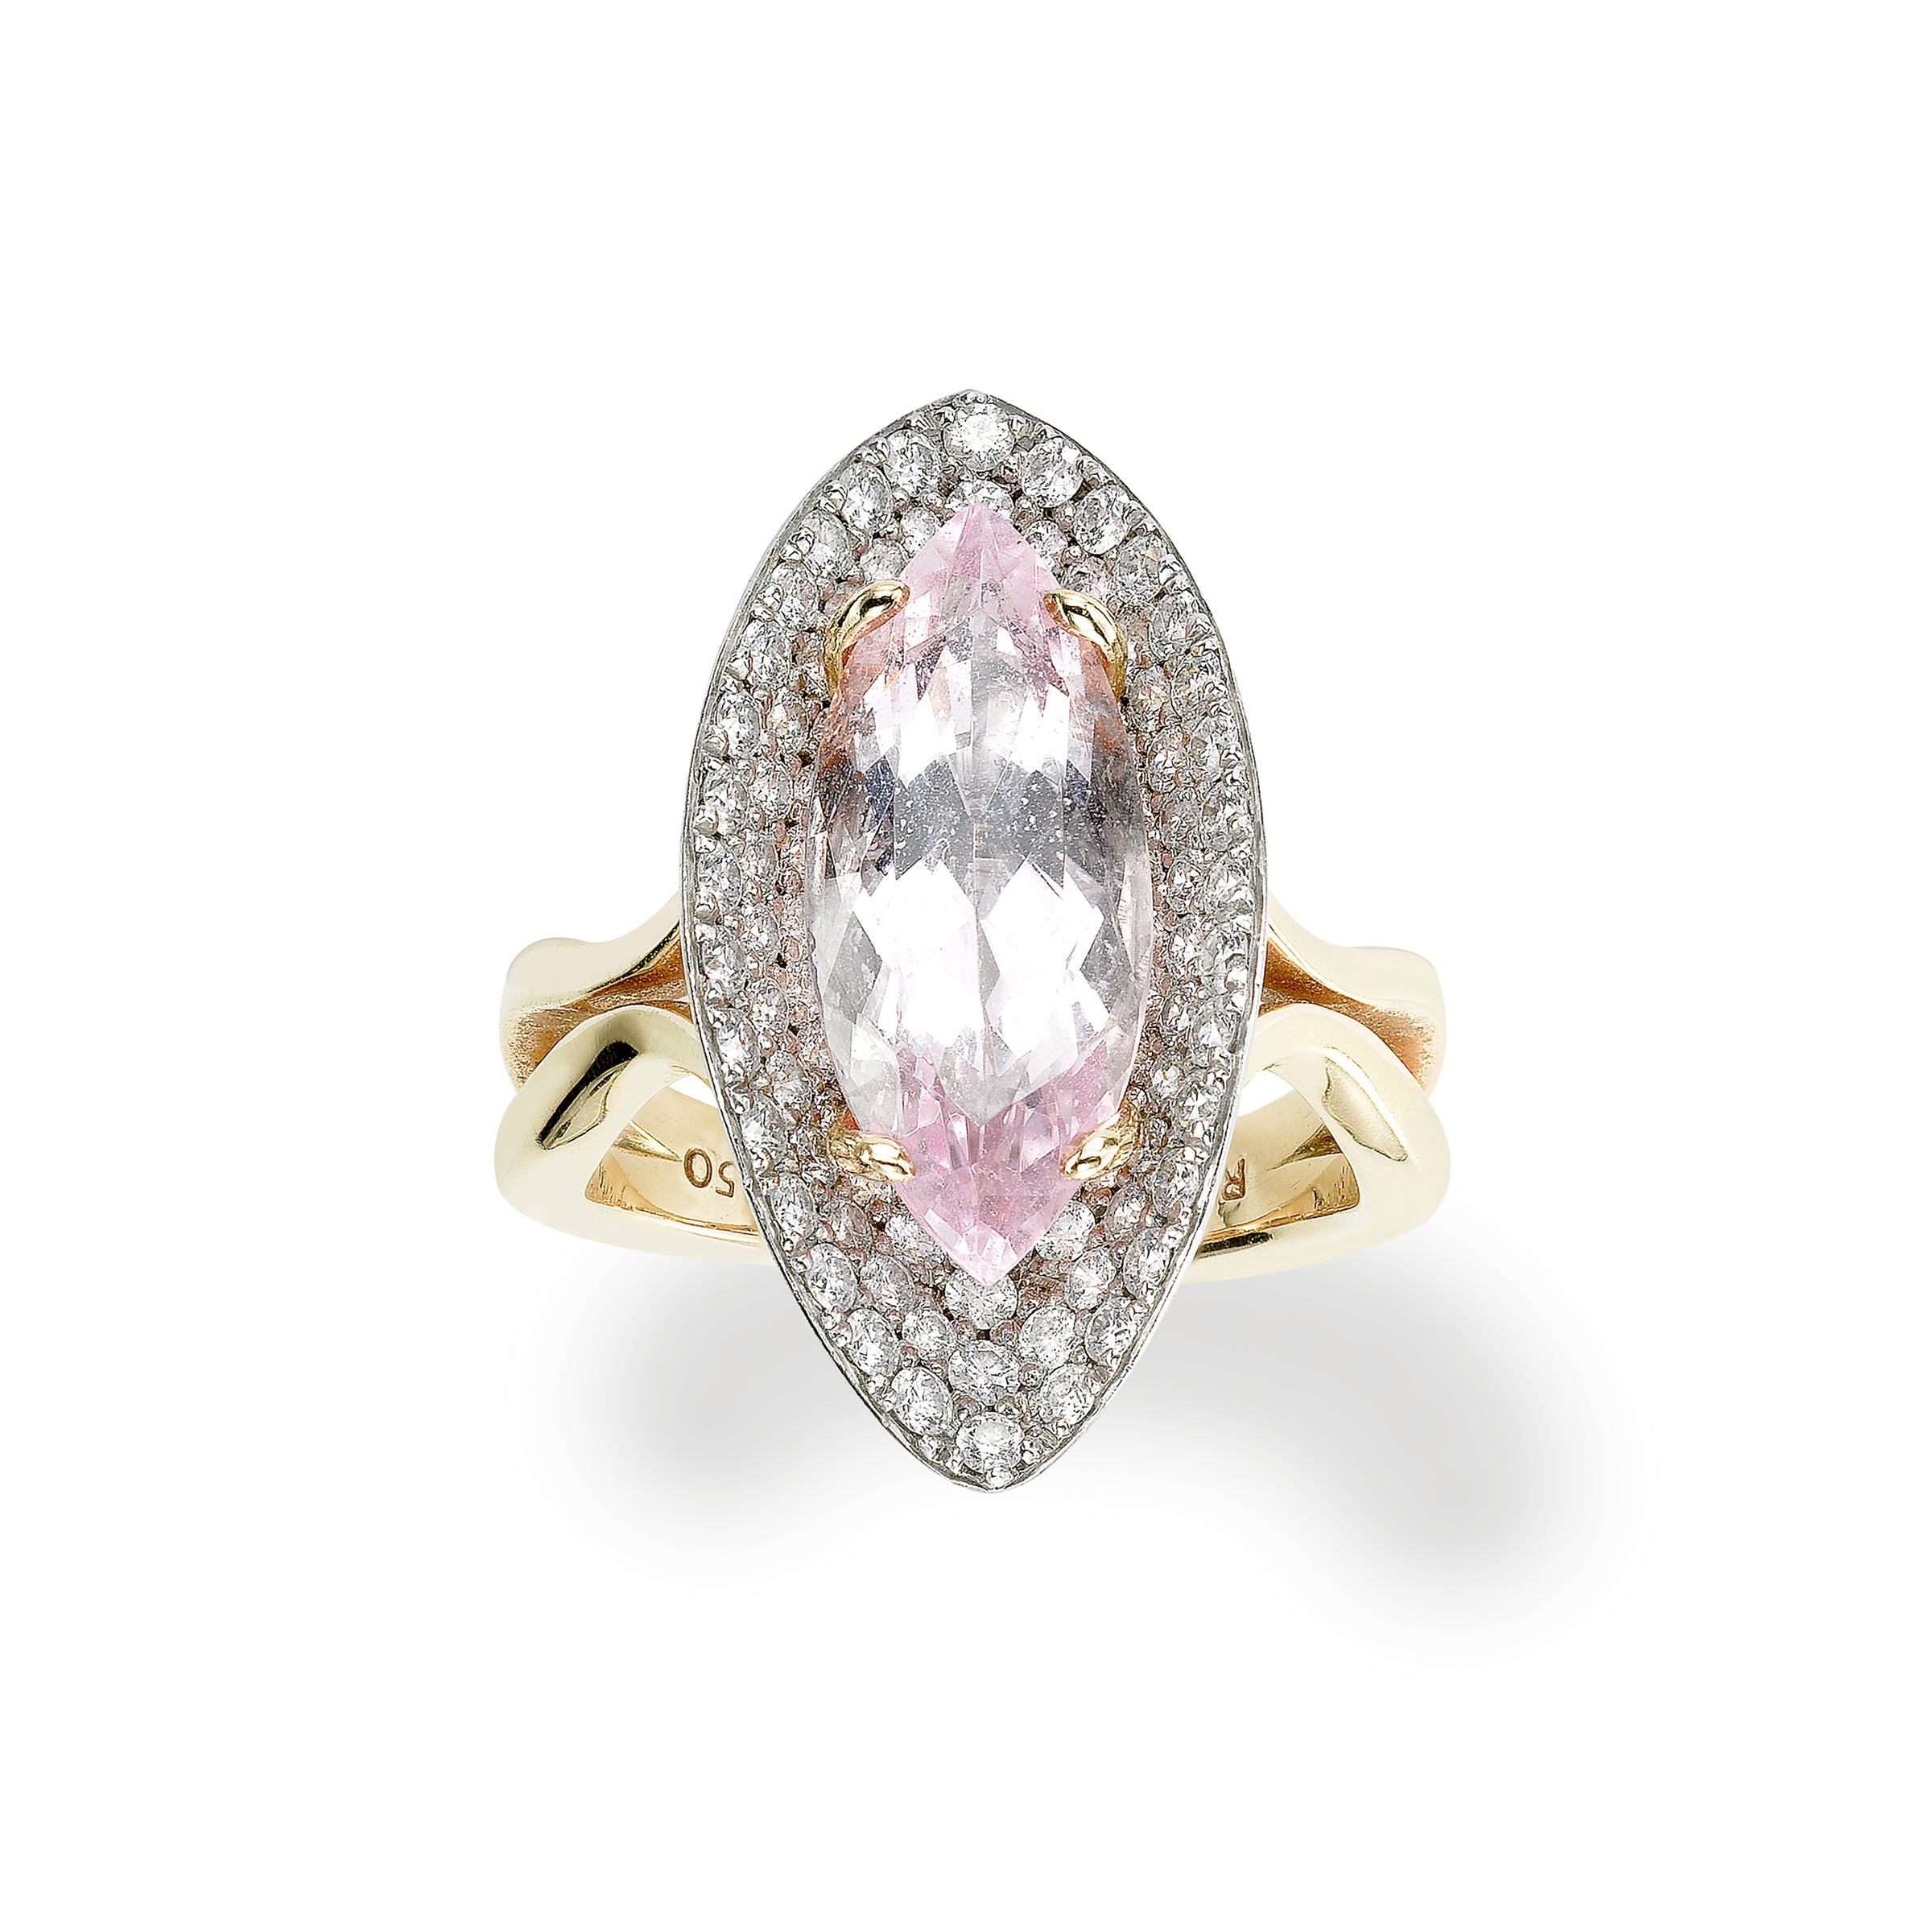 Marquise Shaped Morganite and Diamond Ring, Platinum and 18K Yellow Gold